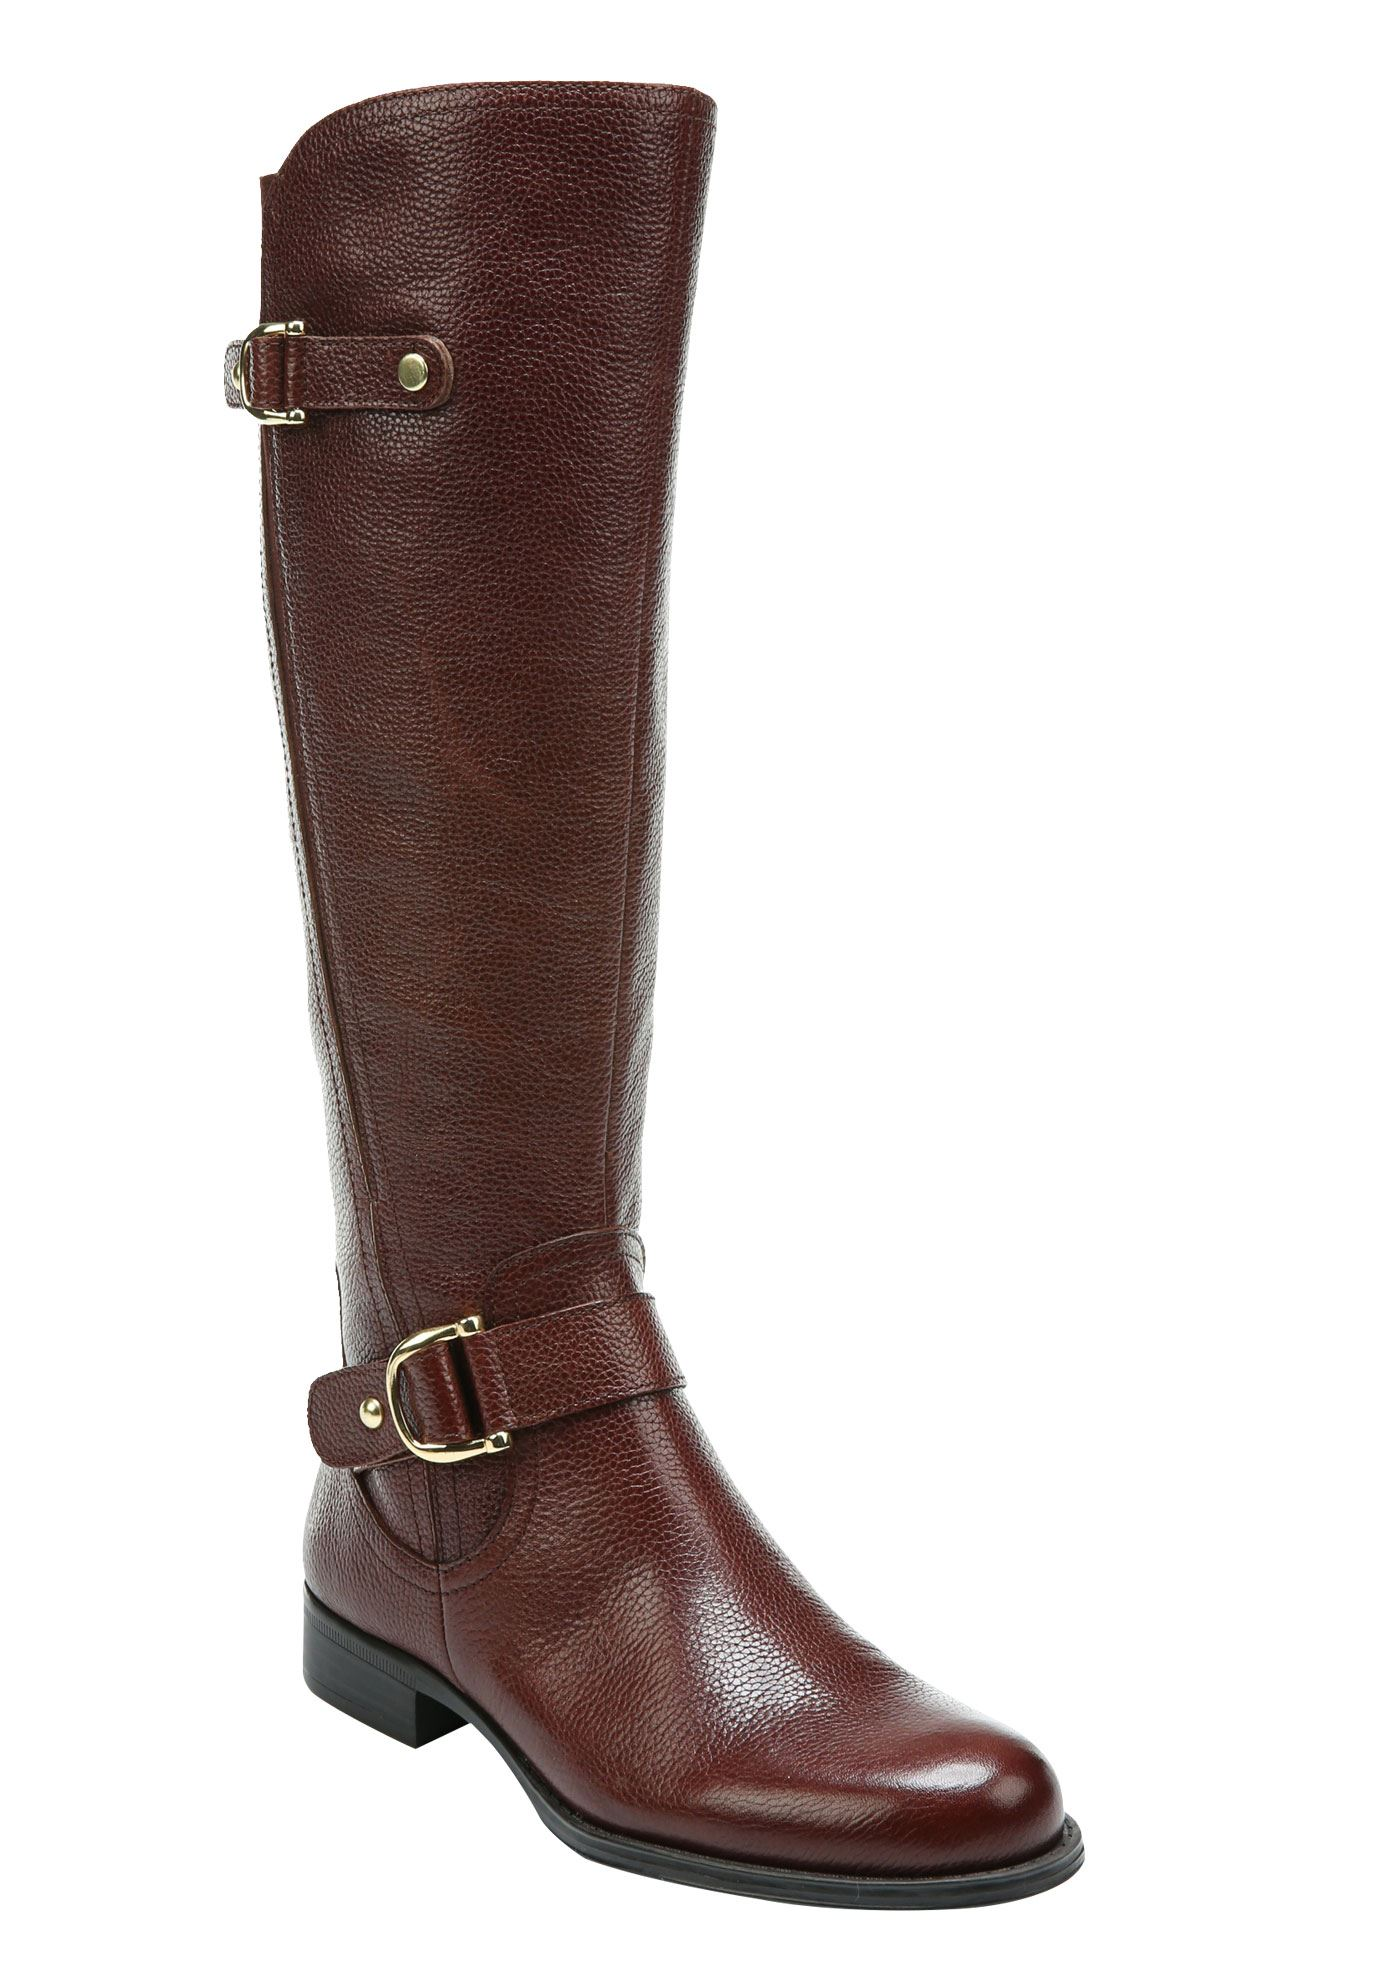 Jenelle Boots by Naturalizer®,